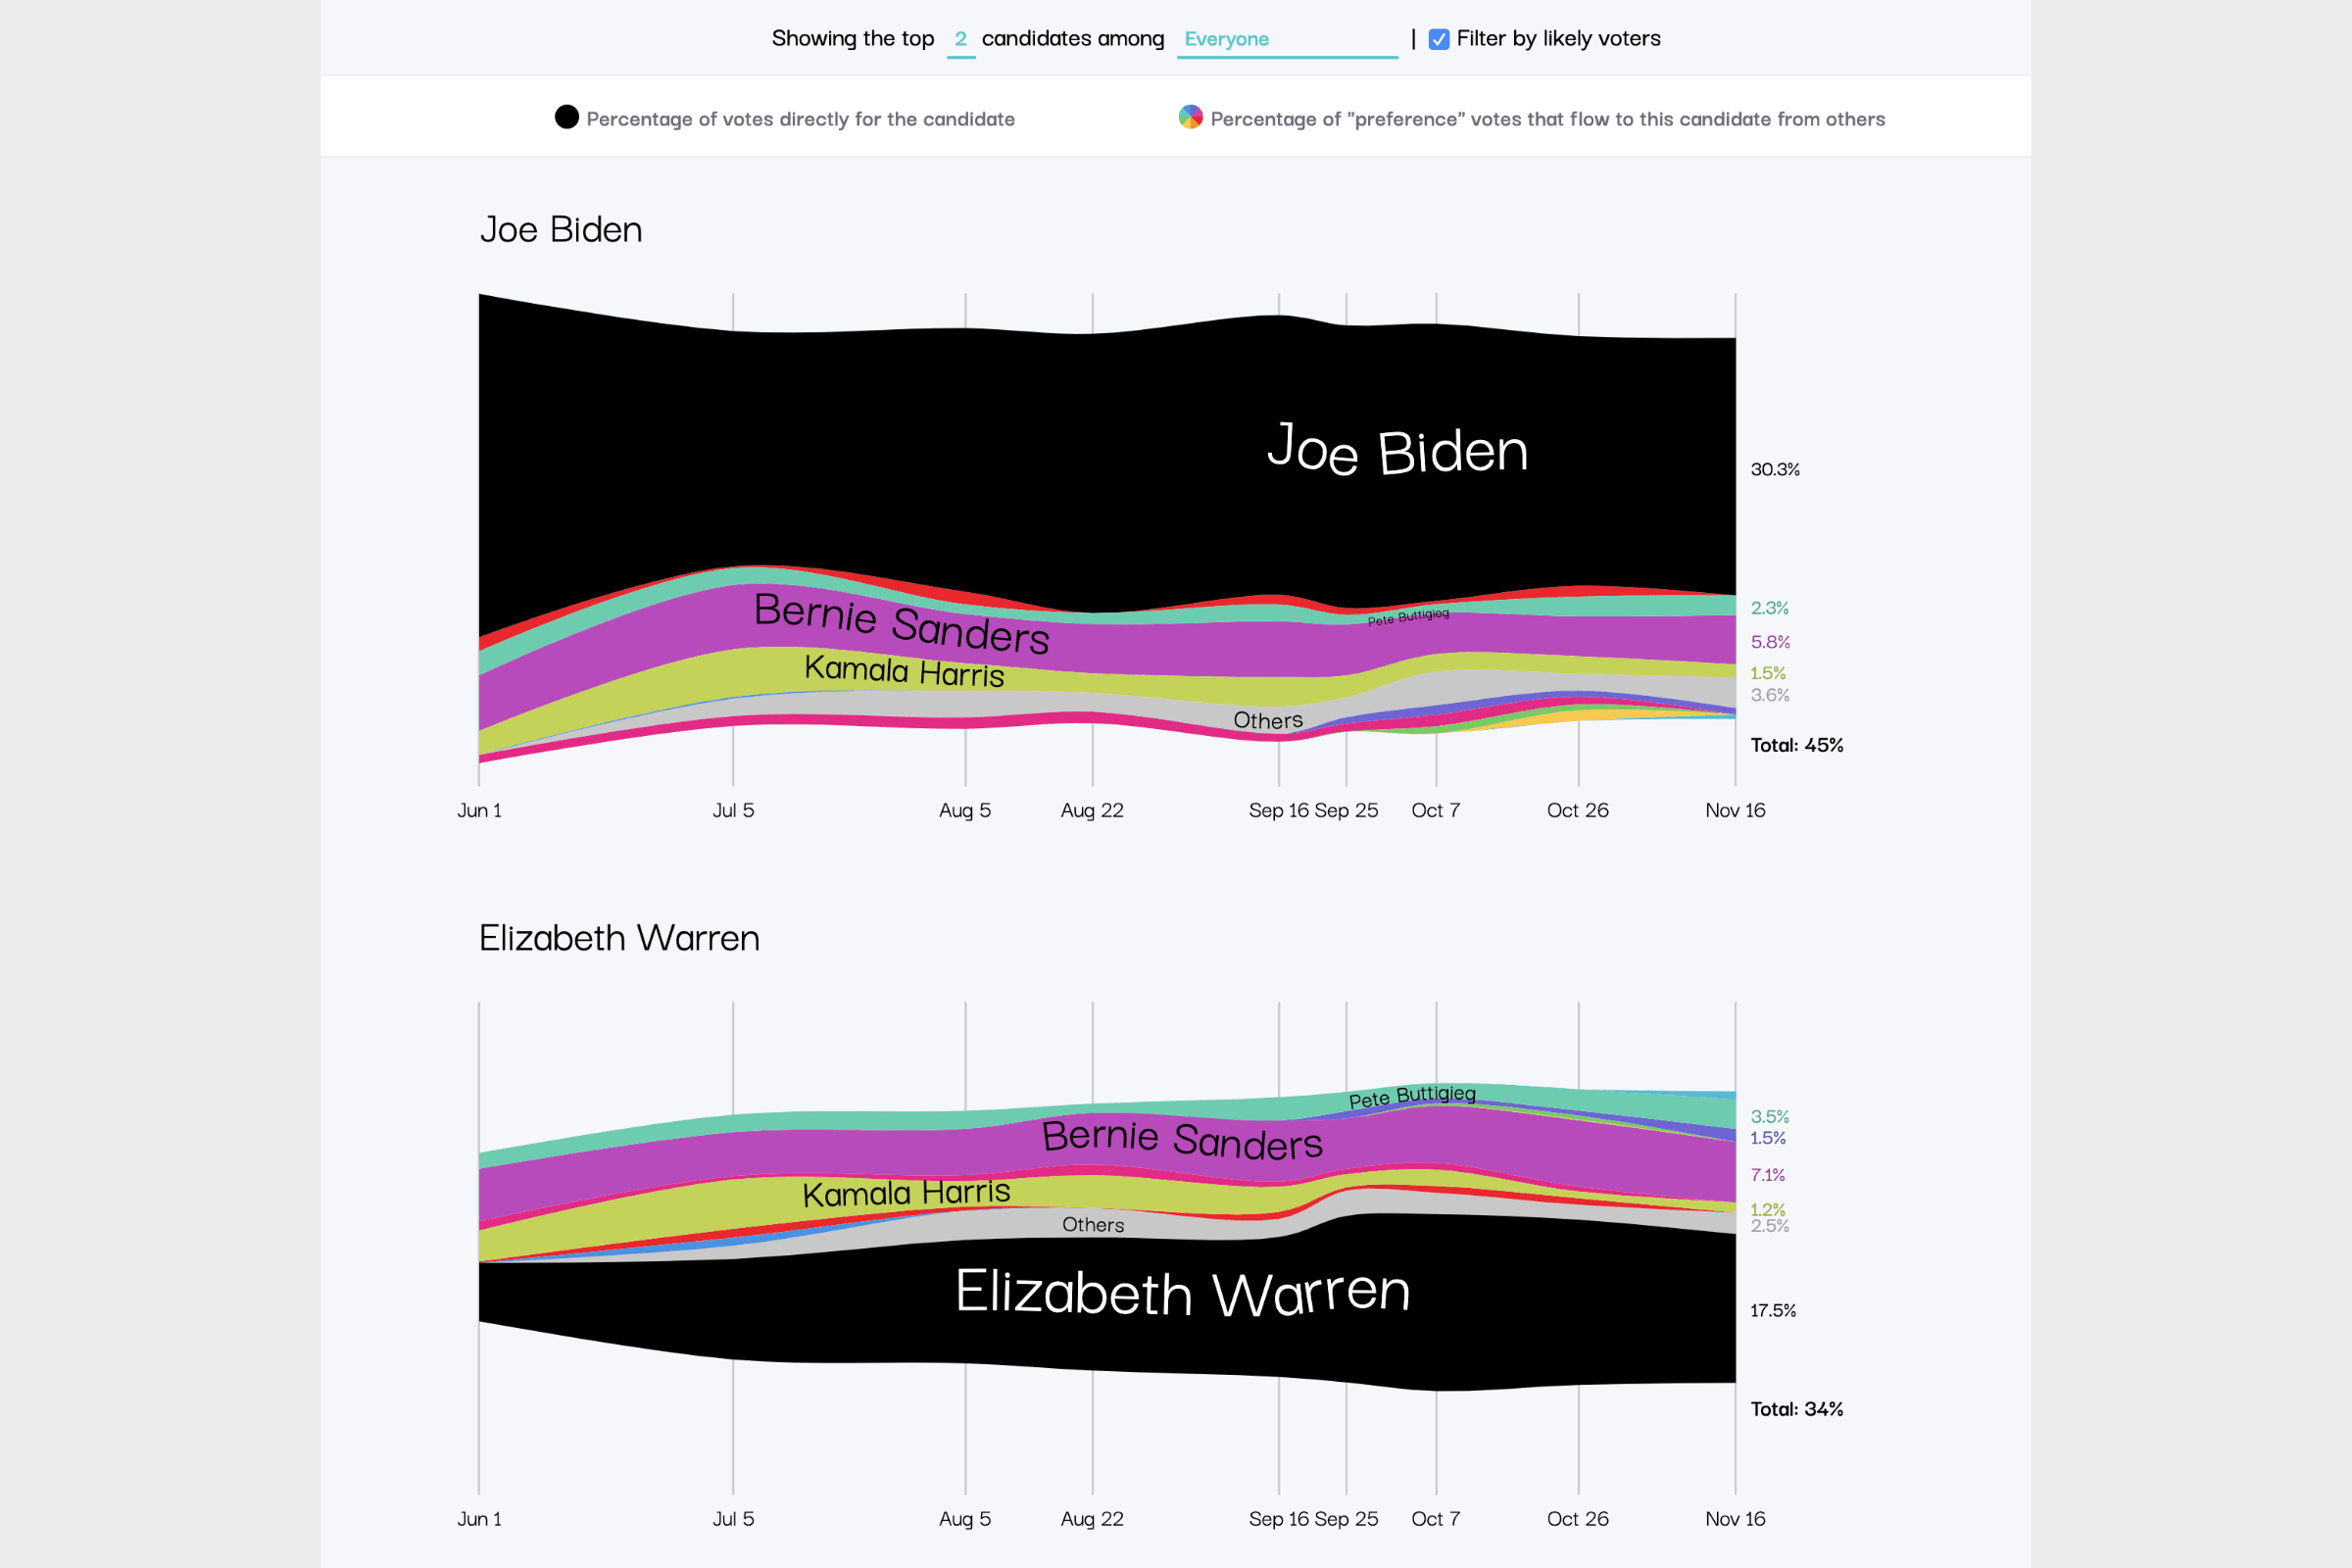 The Streamgraph that reveals the polling results over time